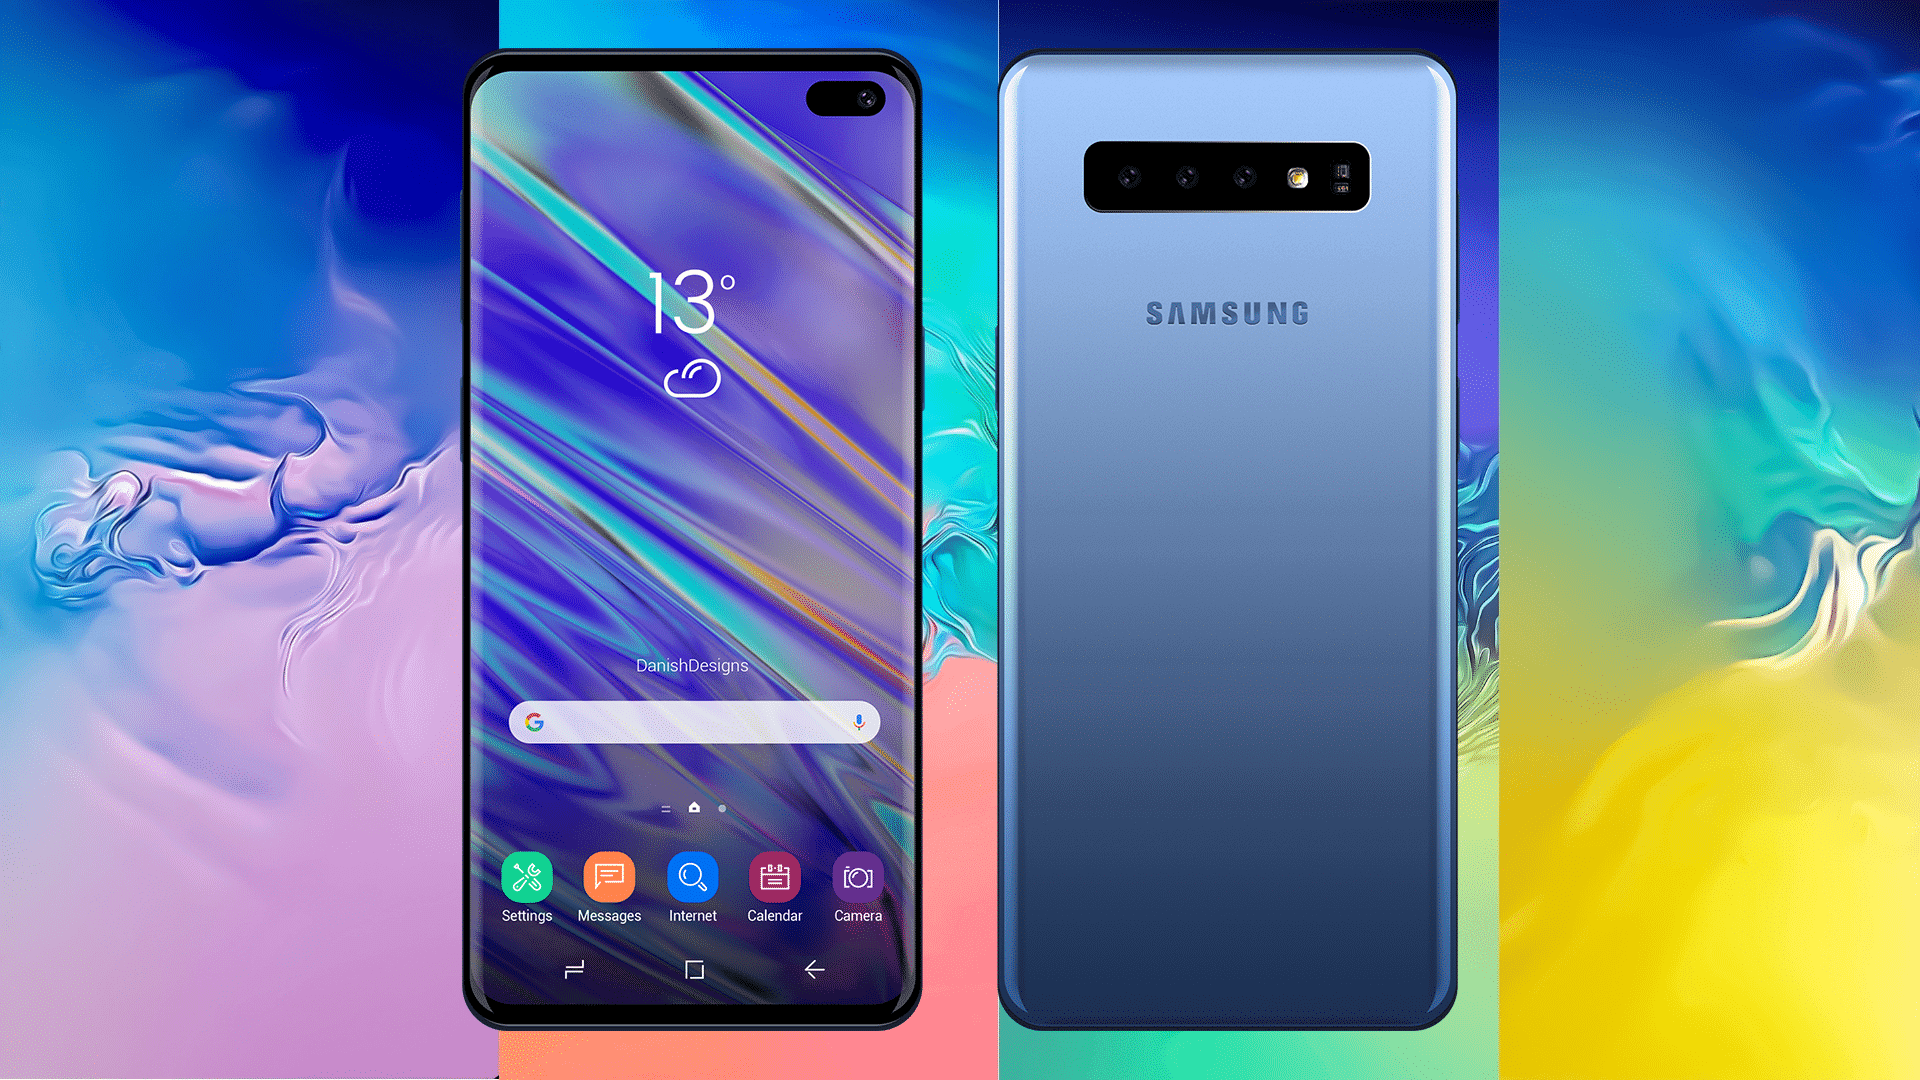 Samsung Galaxy S10 Wallpapers: Download aller Hintergrundbilder 15